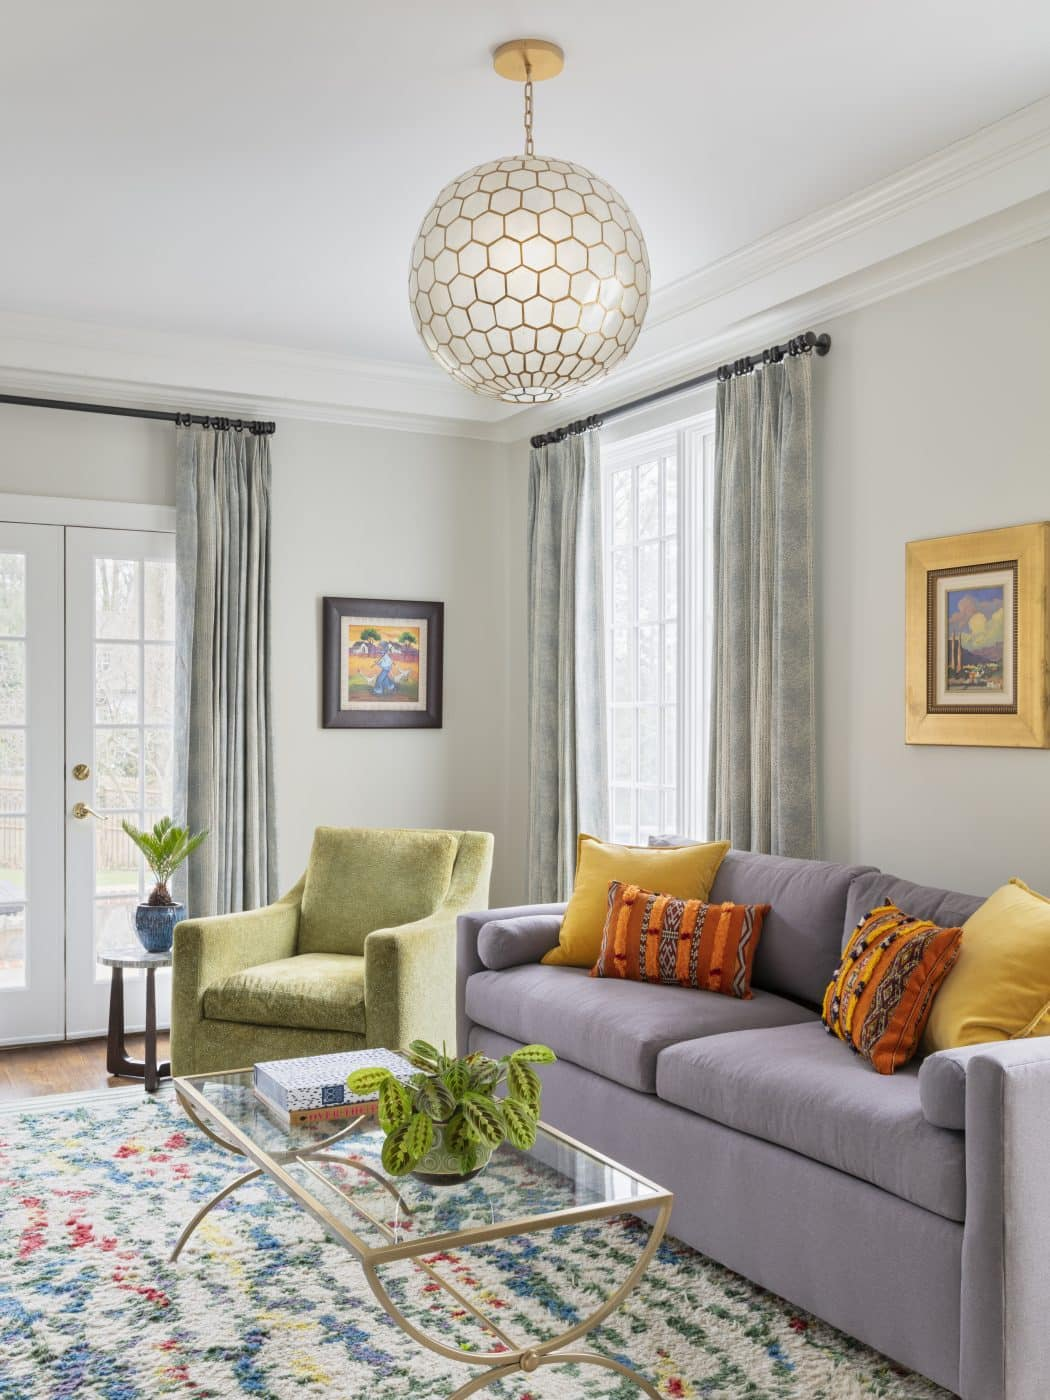 The family room of a Greenwich, Connecticut house with interiors by Danielle Fennoy of Revamp Interior Design